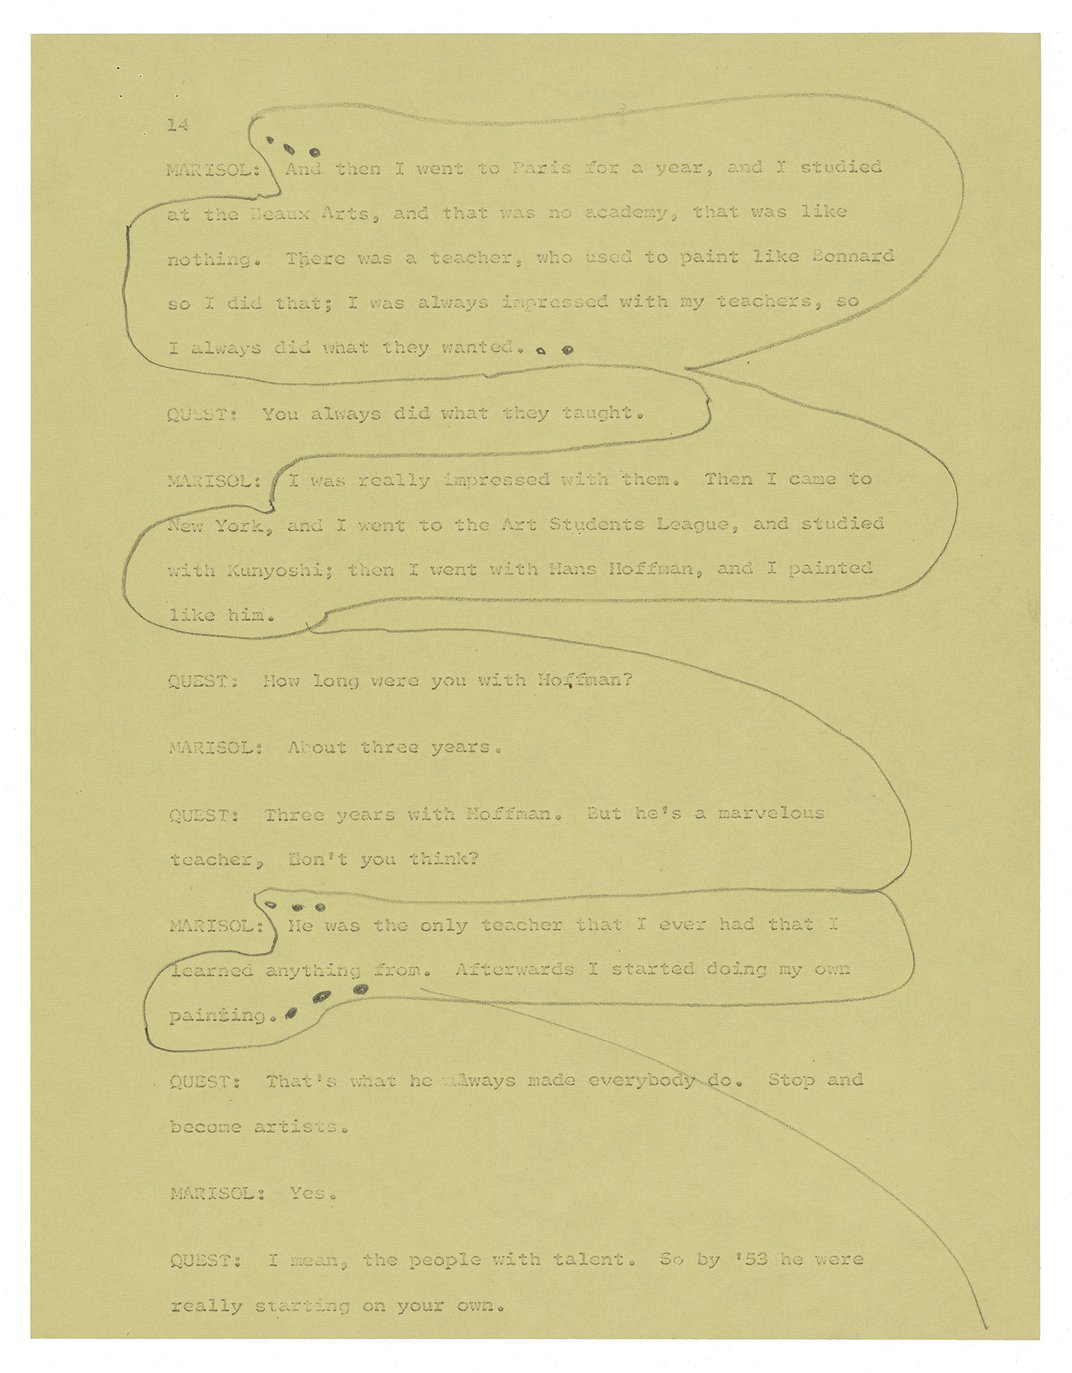 Typescript page from an interview on yellow paper with pencil markings and notations.